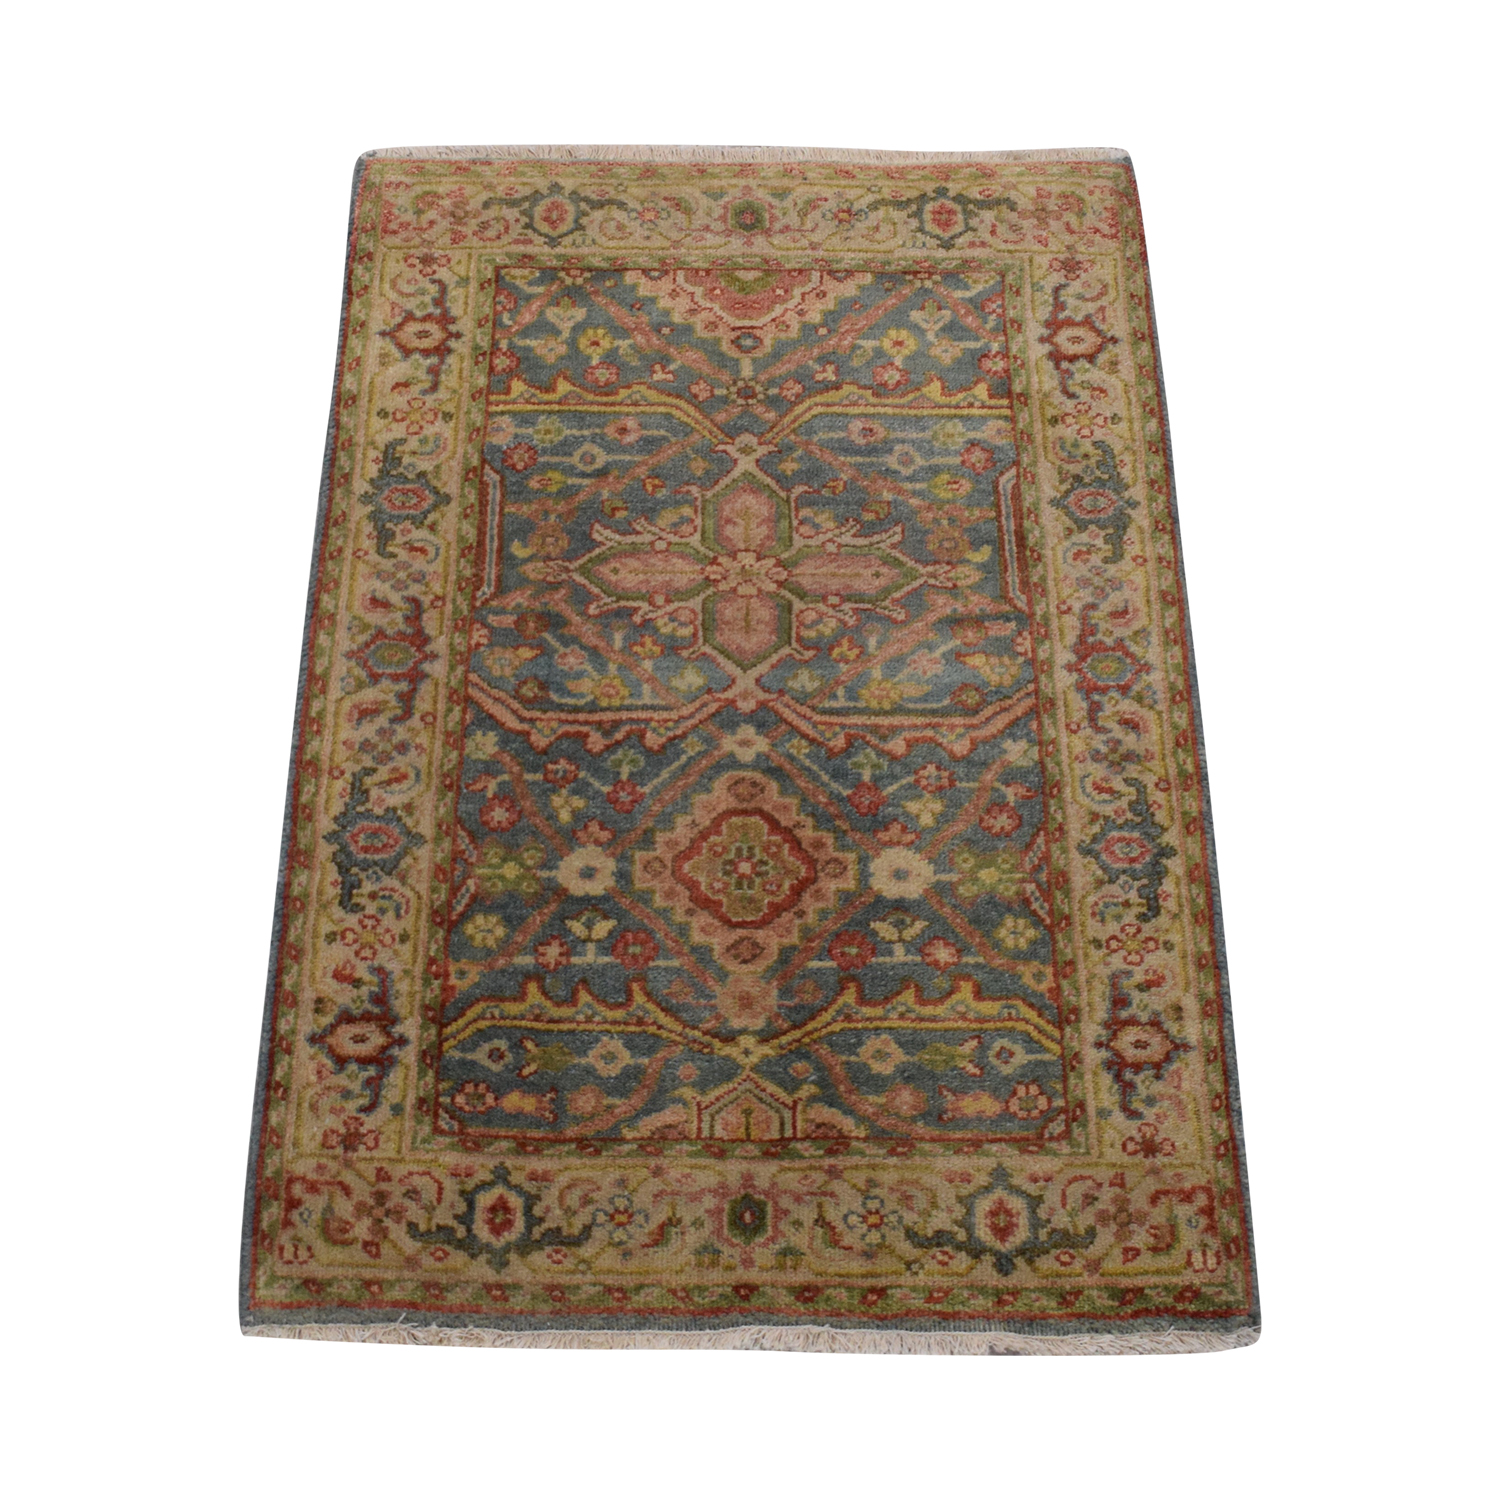 Wayfair Wayfair Rug ct